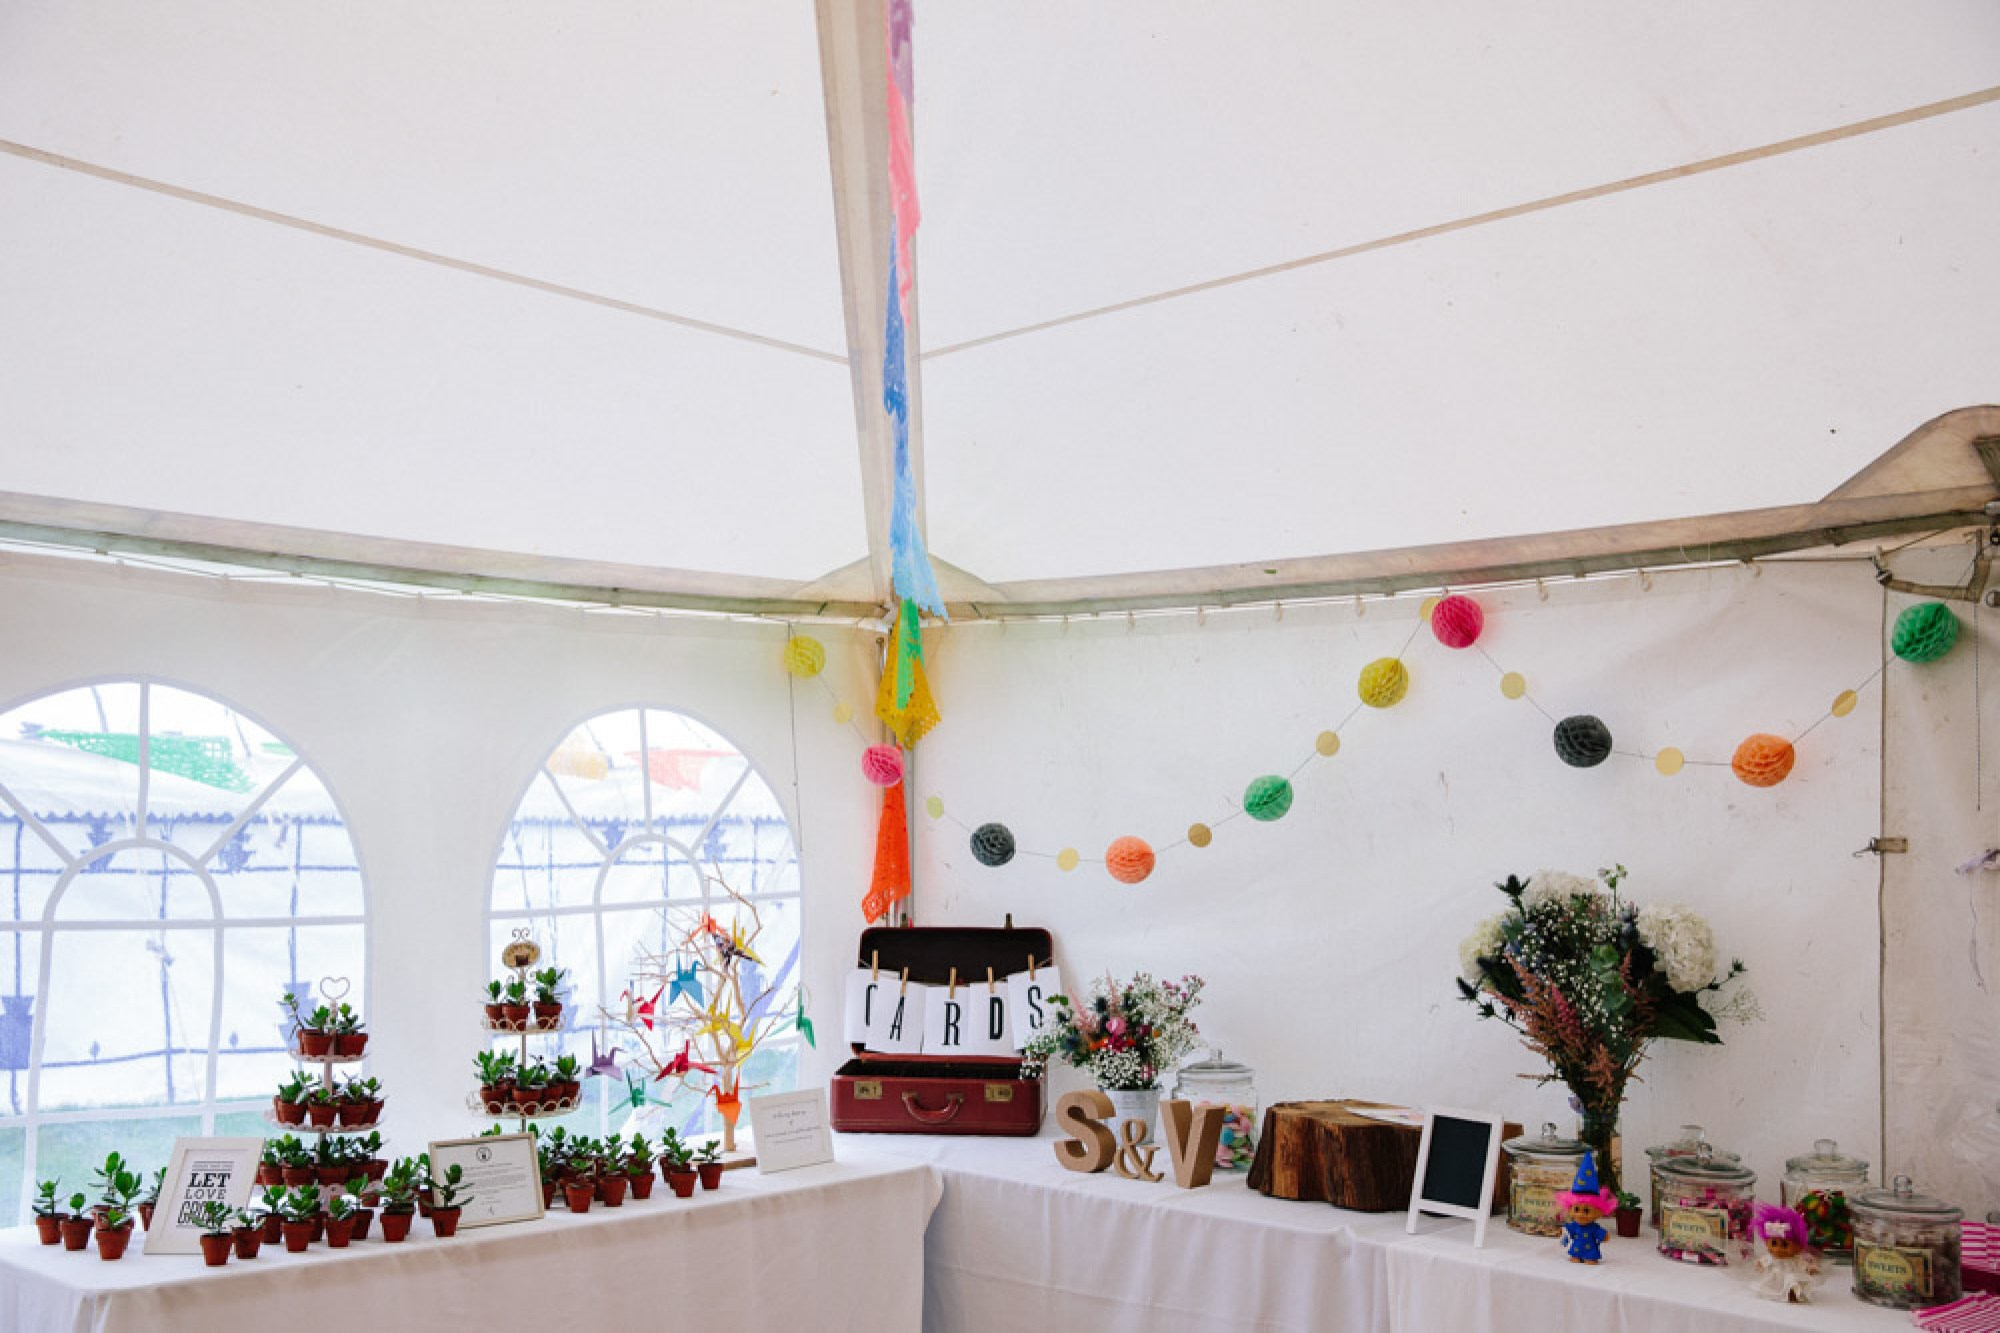 Table for cards and wedding favours